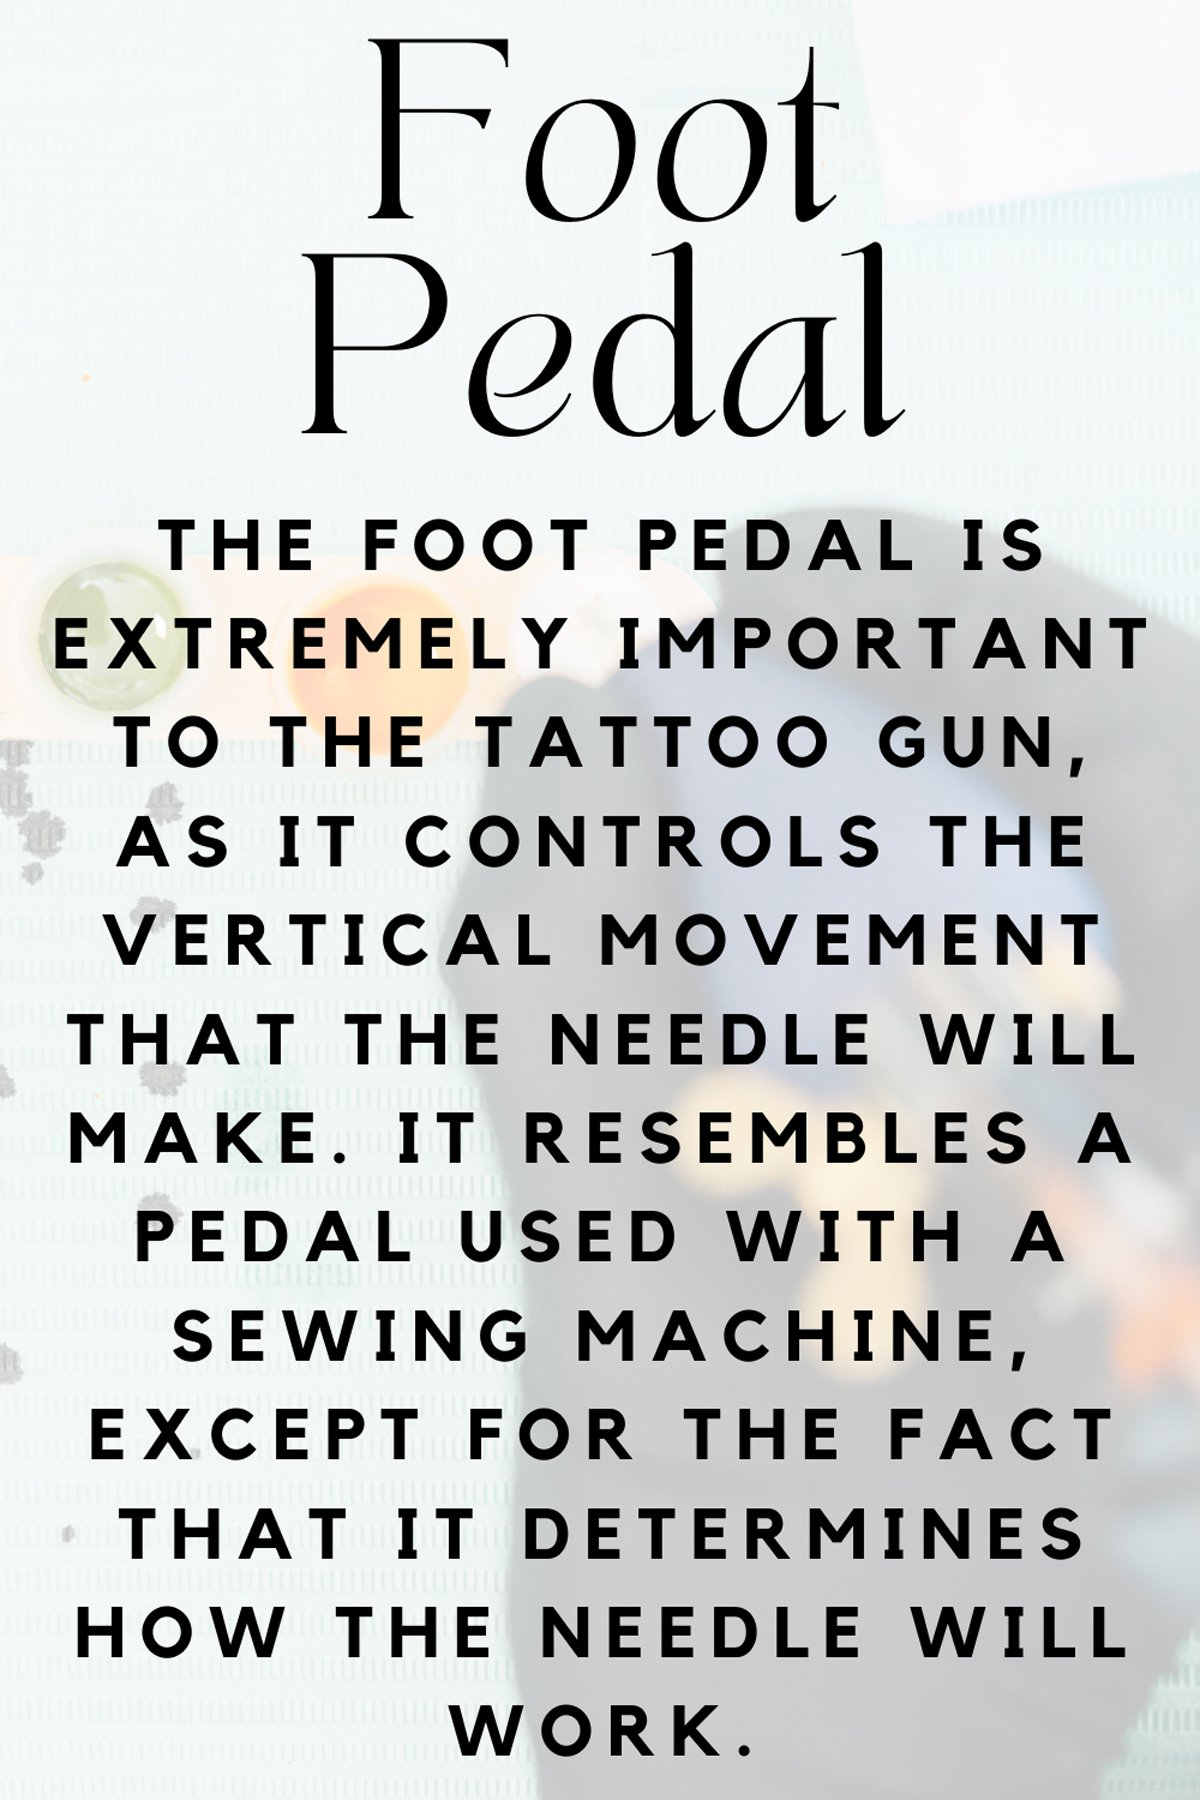 Tattoo Foot Pedal Definition